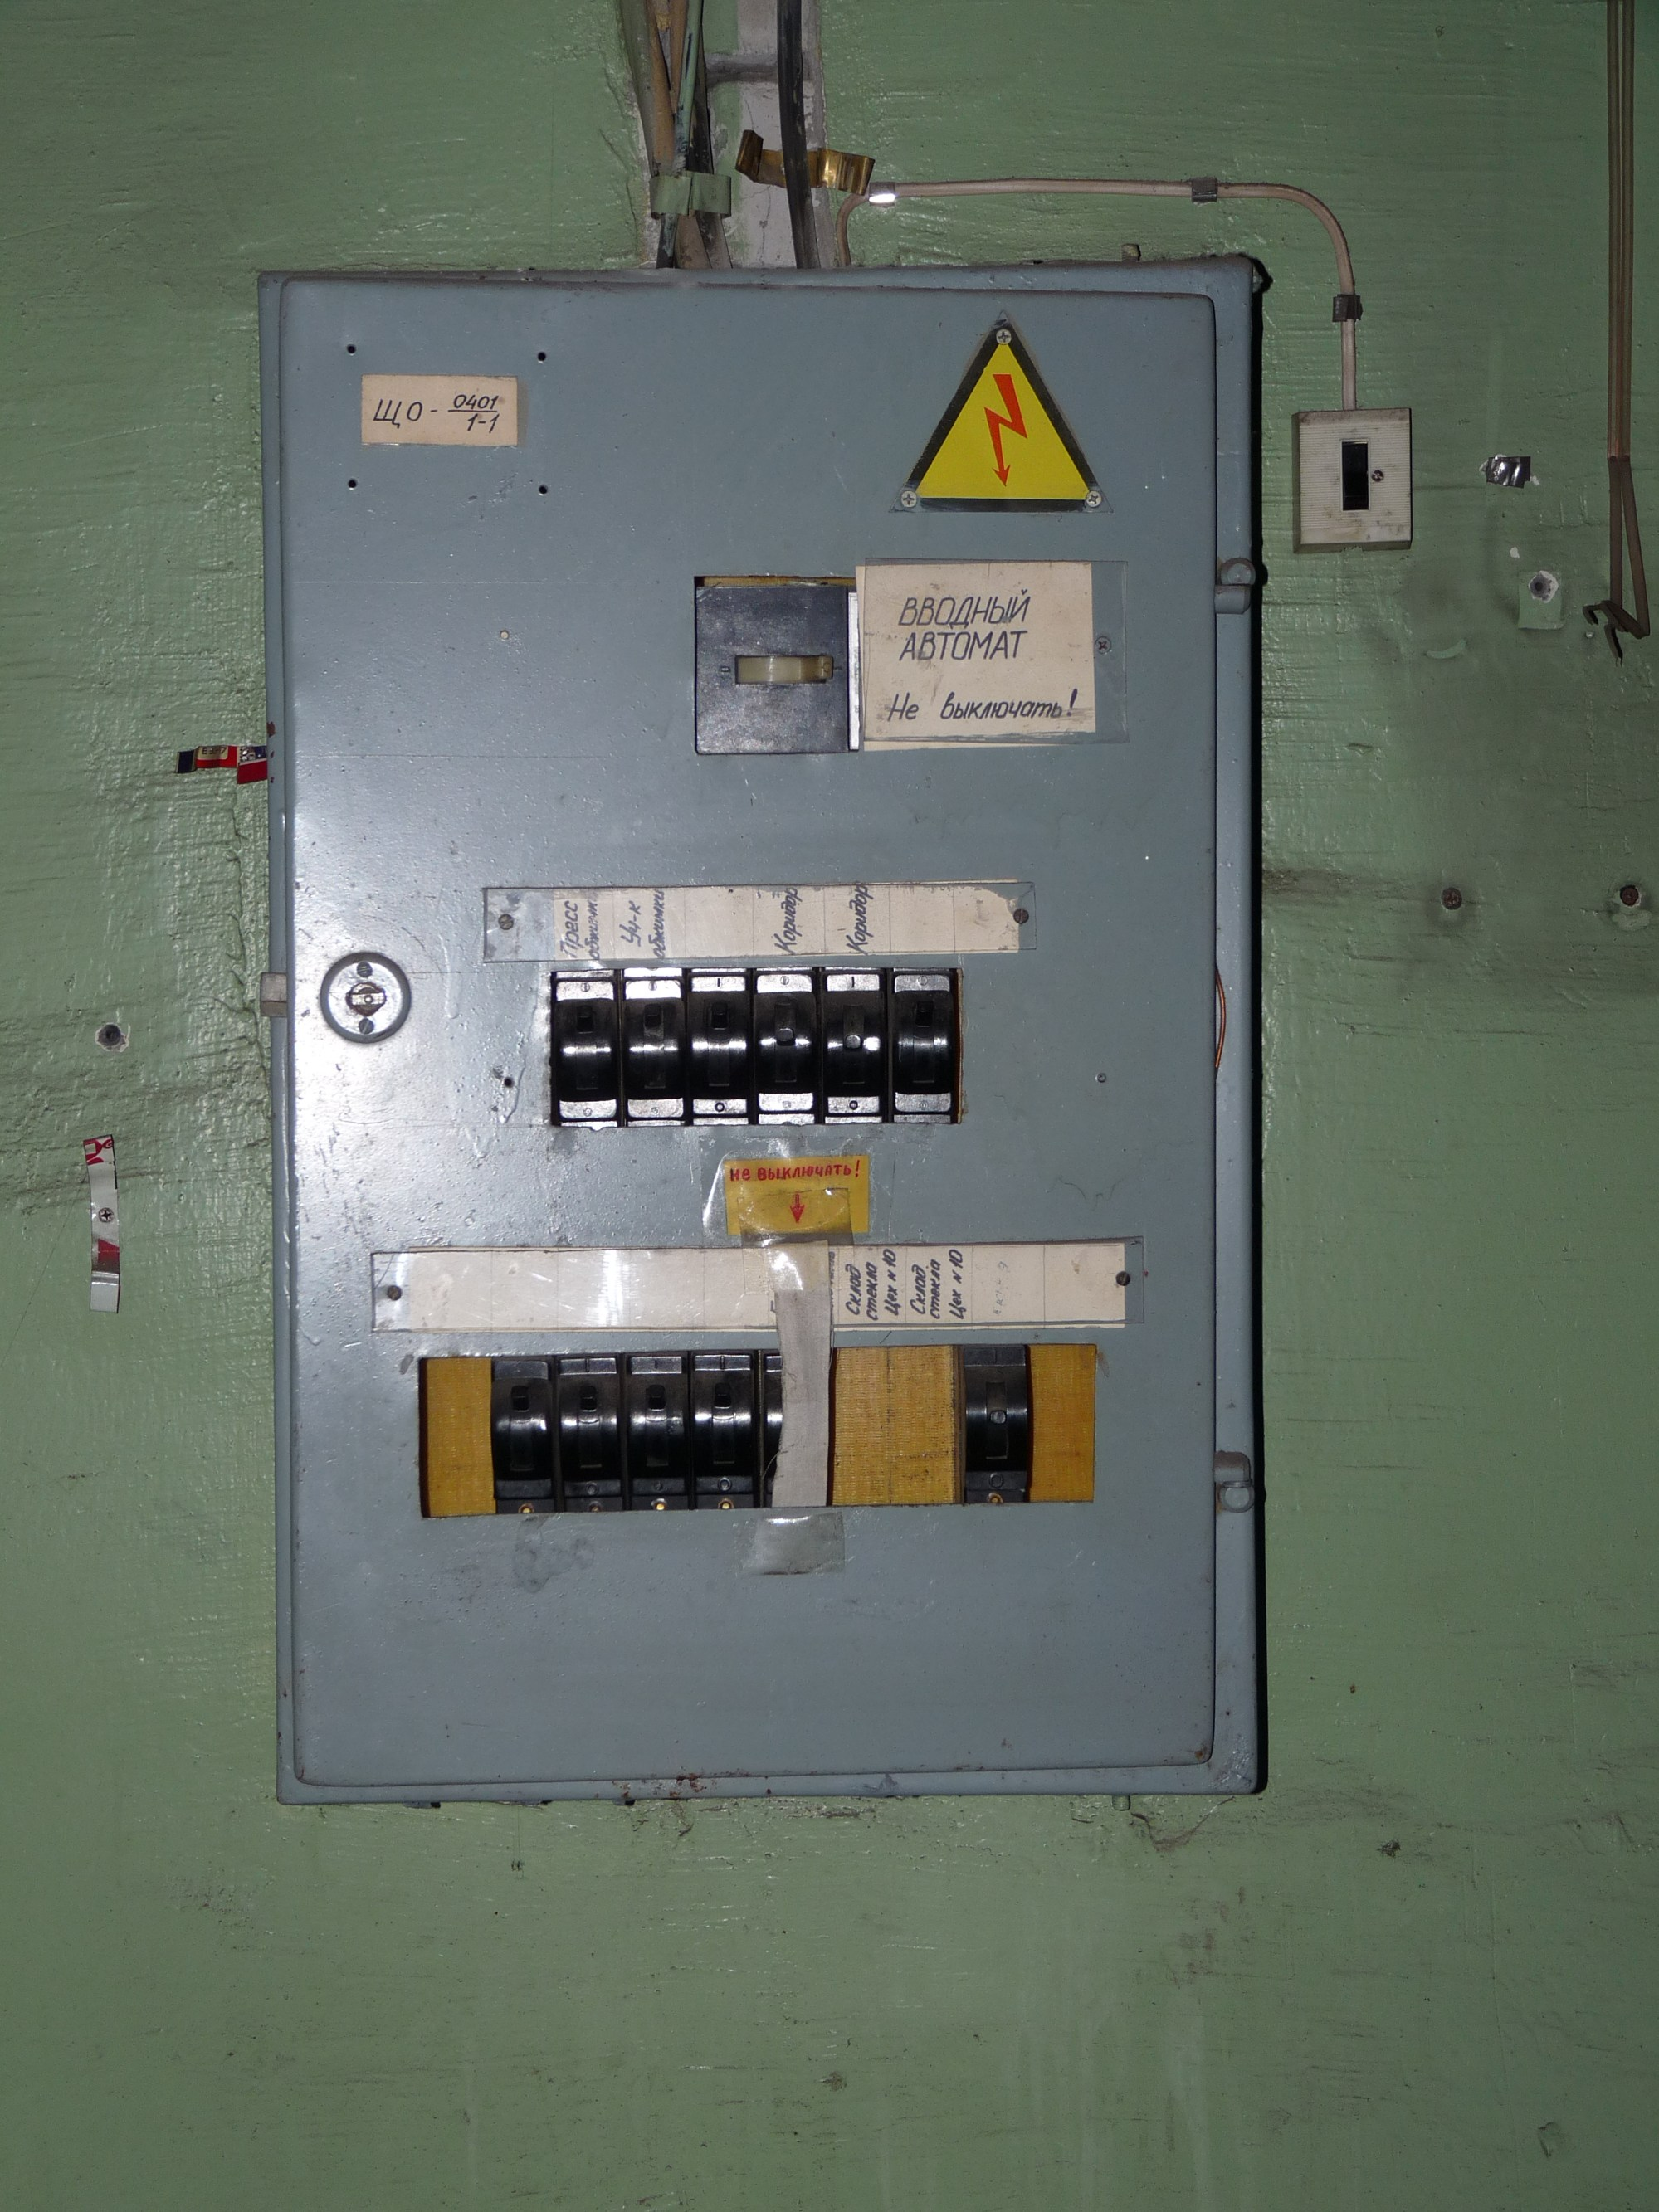 hight resolution of file old fuse box in abandoned factory jpg